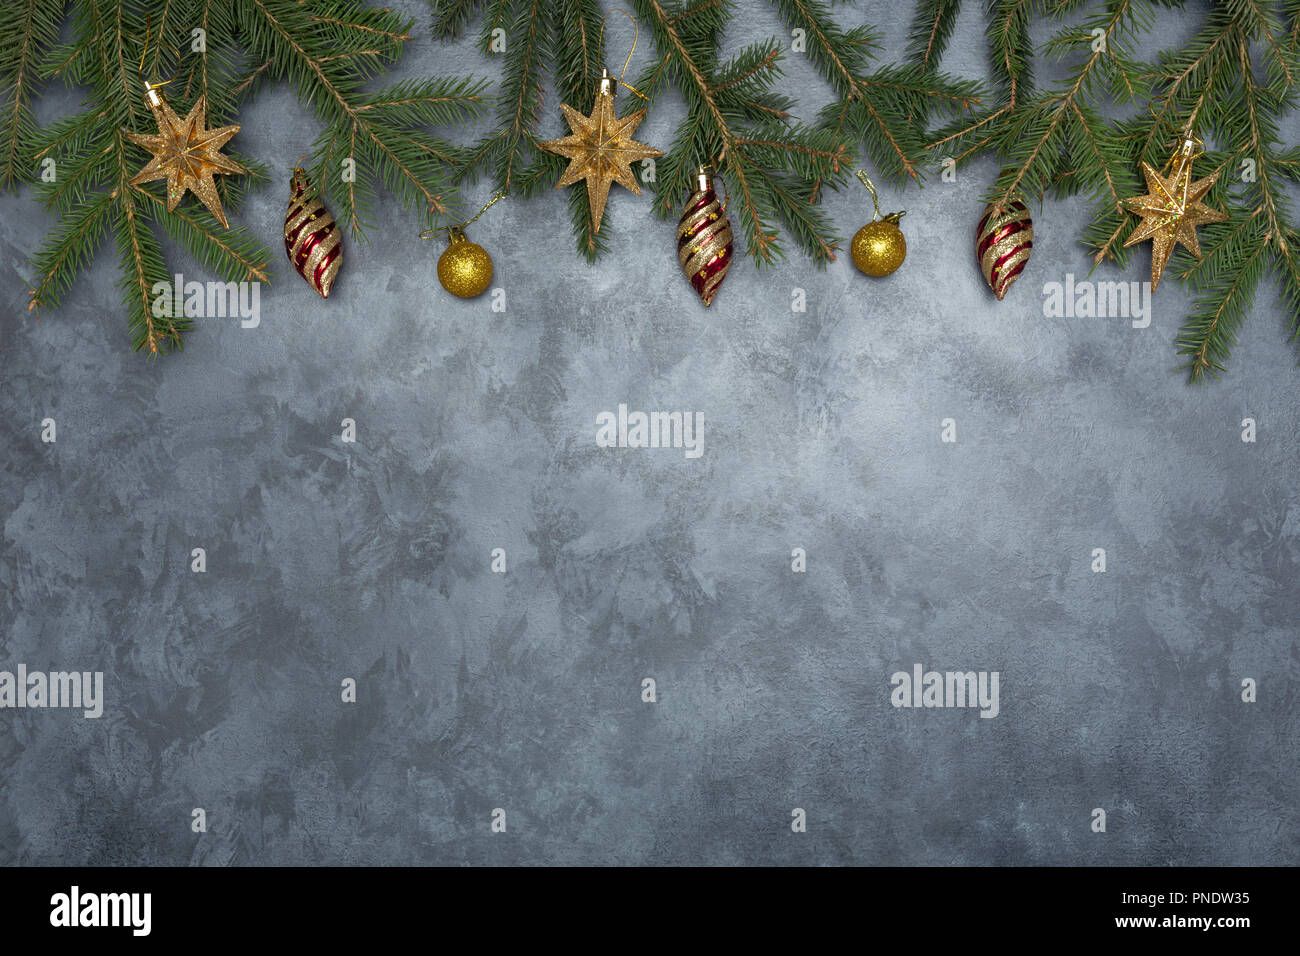 holiday frame of christmas decorations on blue dark stucco concrete background with fir branch gold balls stars christmas socks and toys - Teal And Gold Christmas Decorations